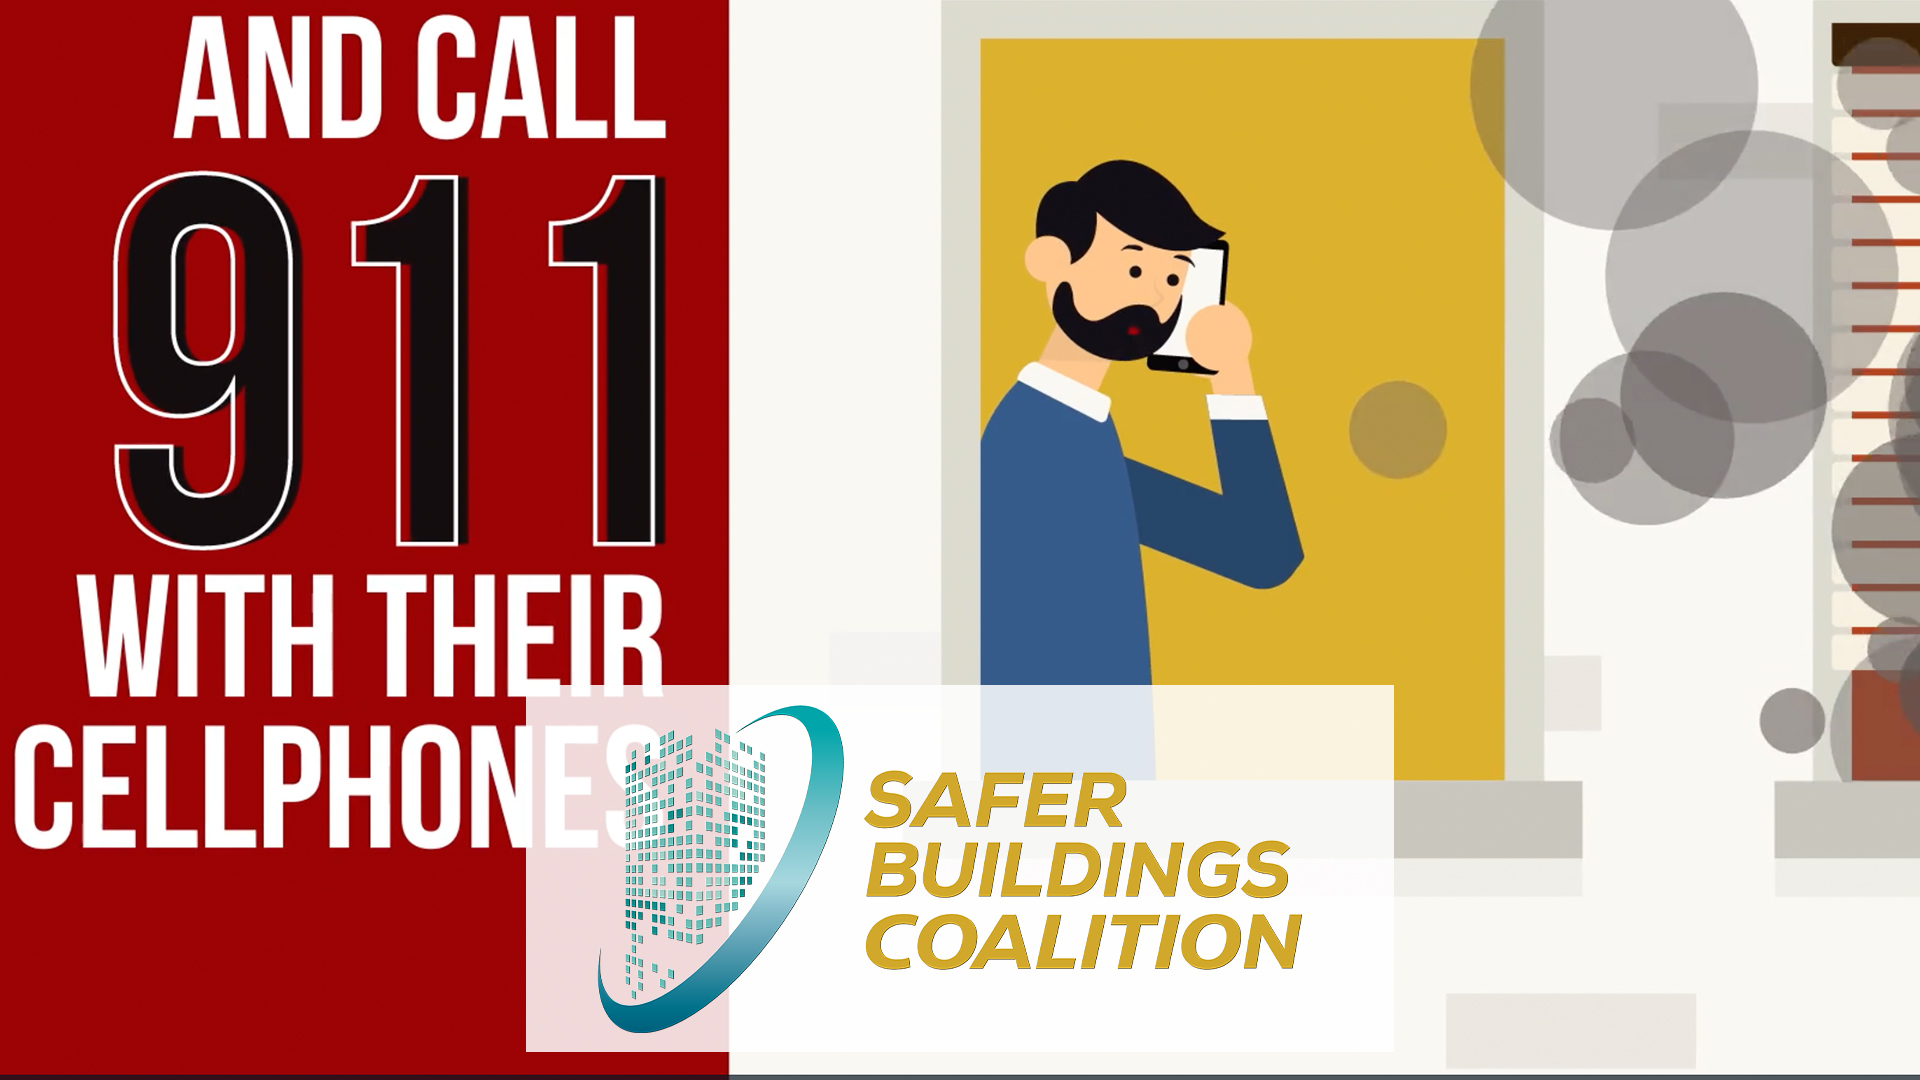 Safer Buildings Coalition Animation